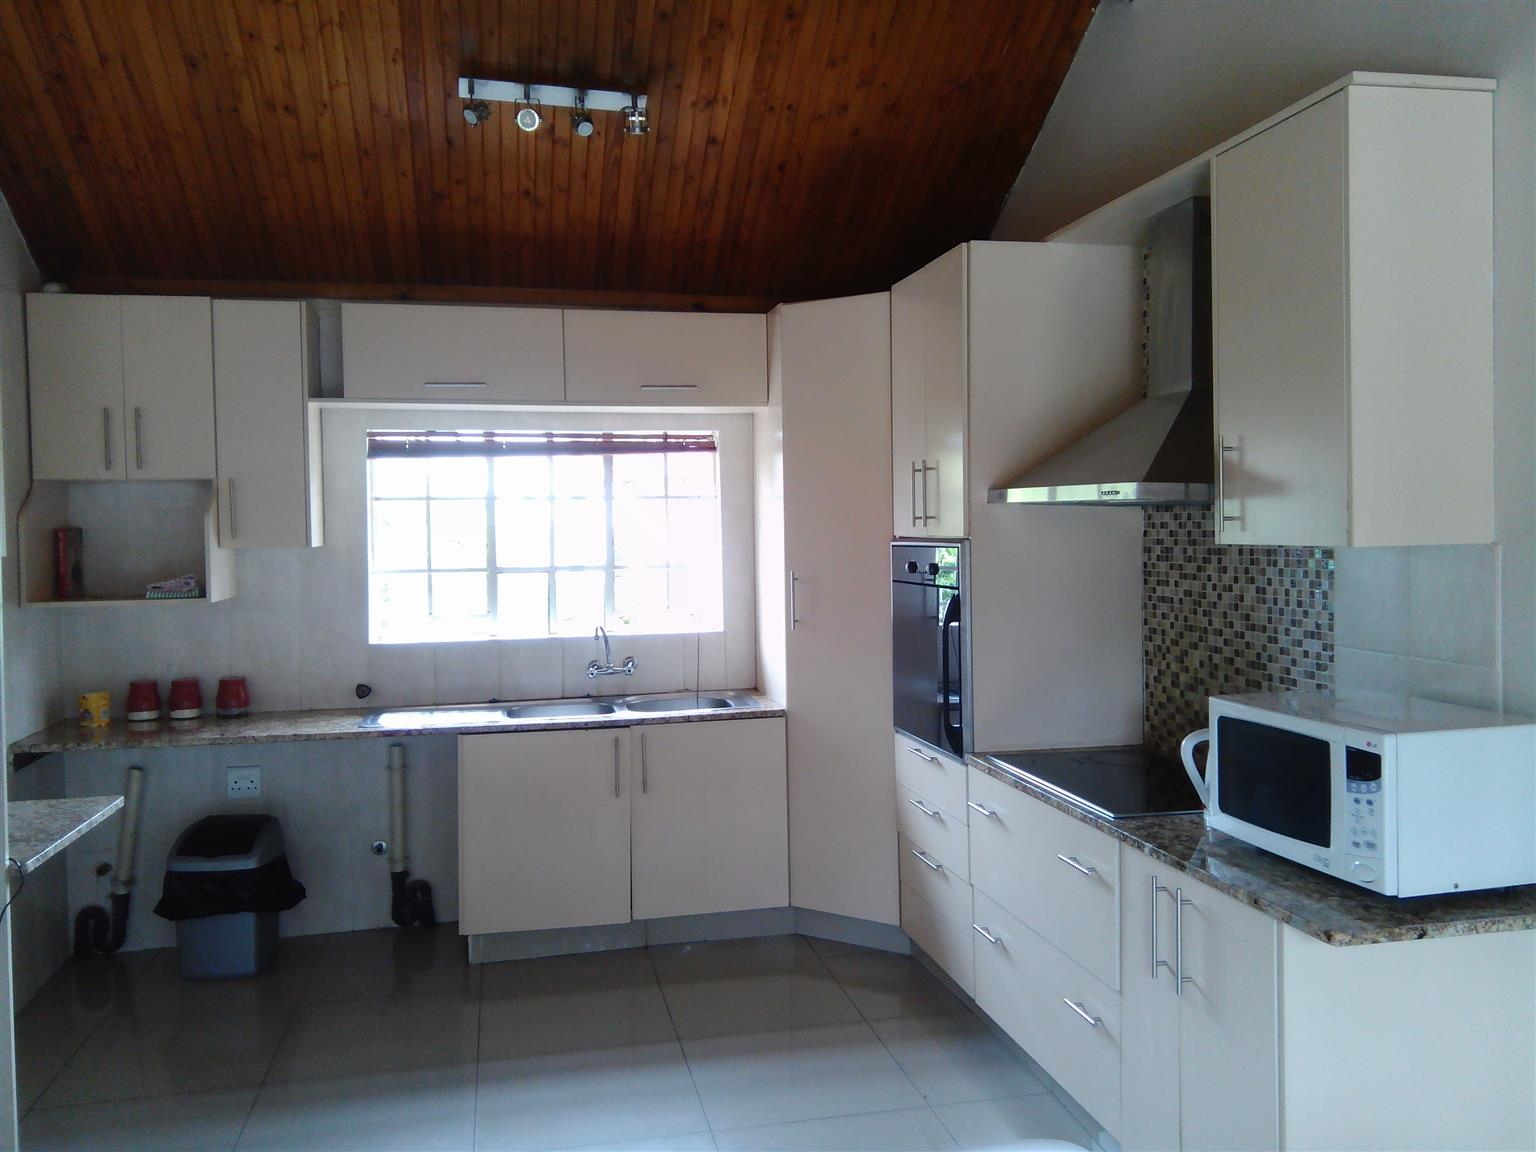 Short / long Term Accommodation In Douglassdale, Fourways, Randburg and Northgate (R4500 Monthly)